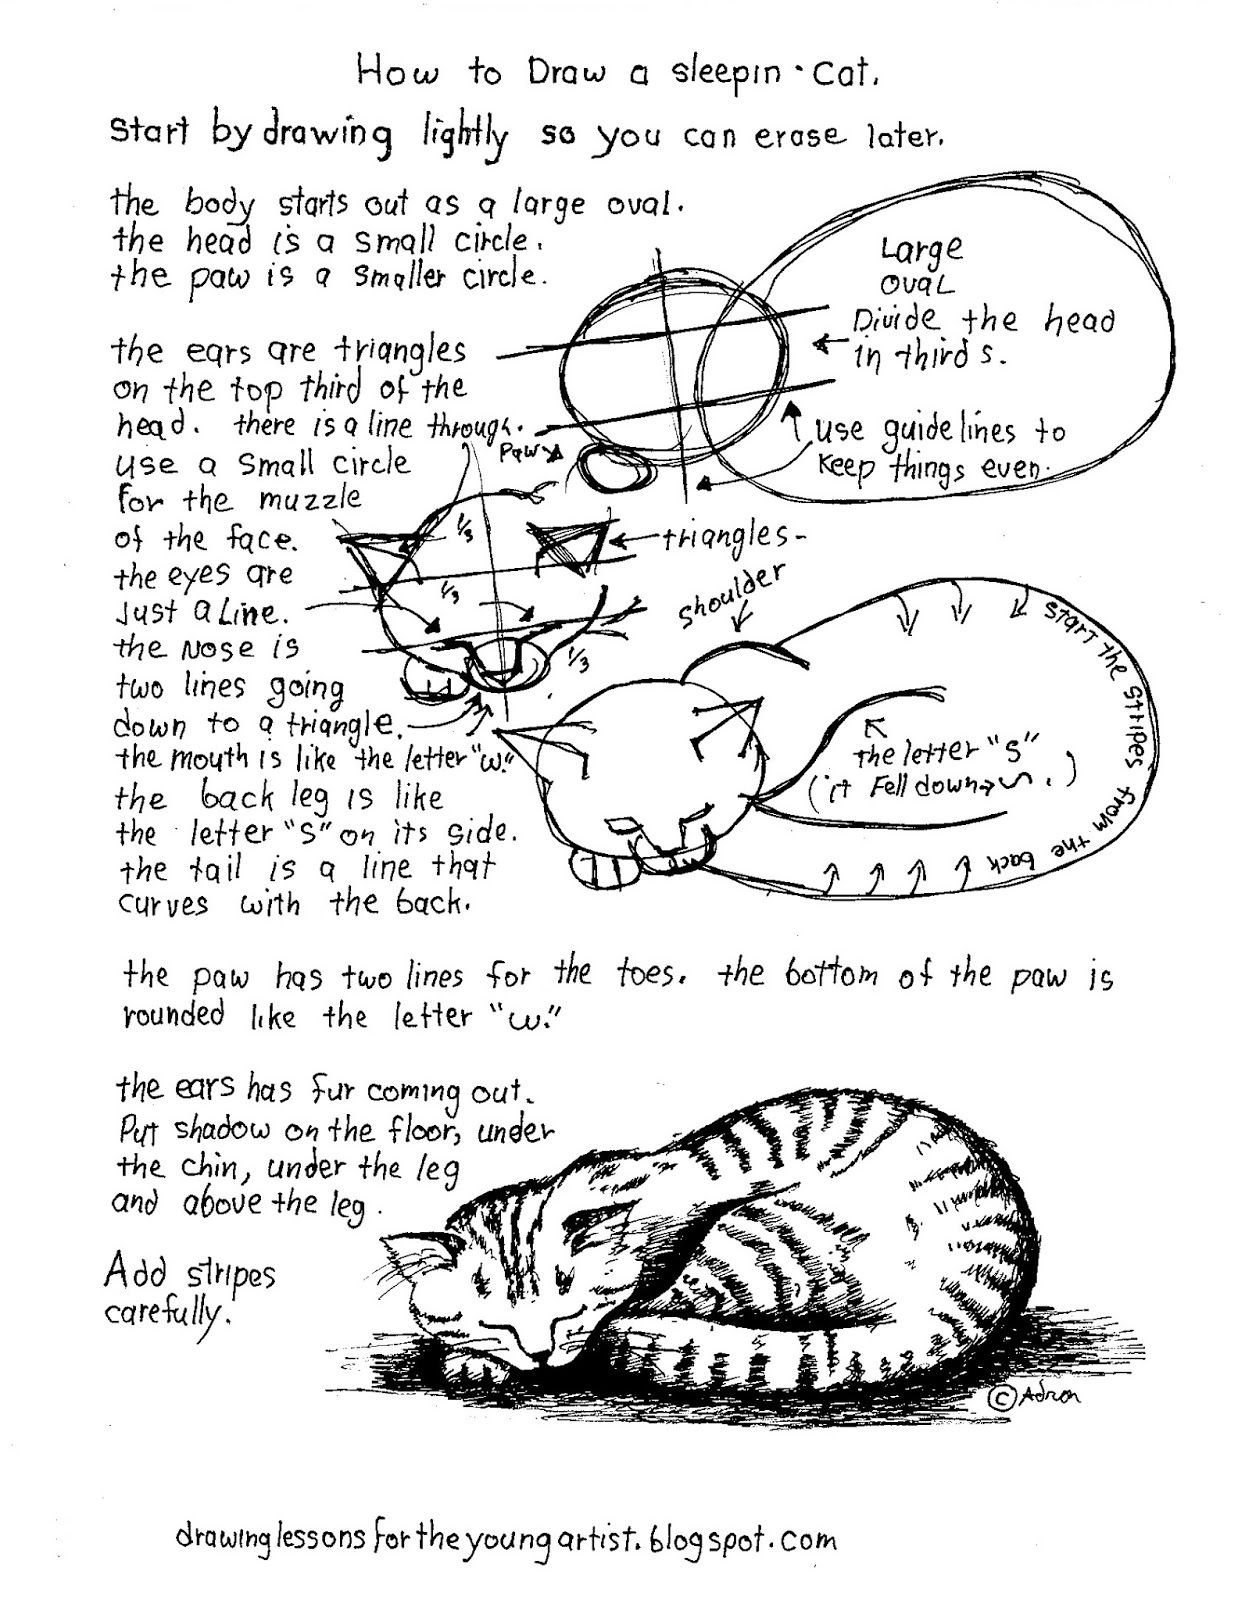 worksheet How To Draw Printable Worksheets how to draw worksheets for the young artist a sleeping cat printable worksheet